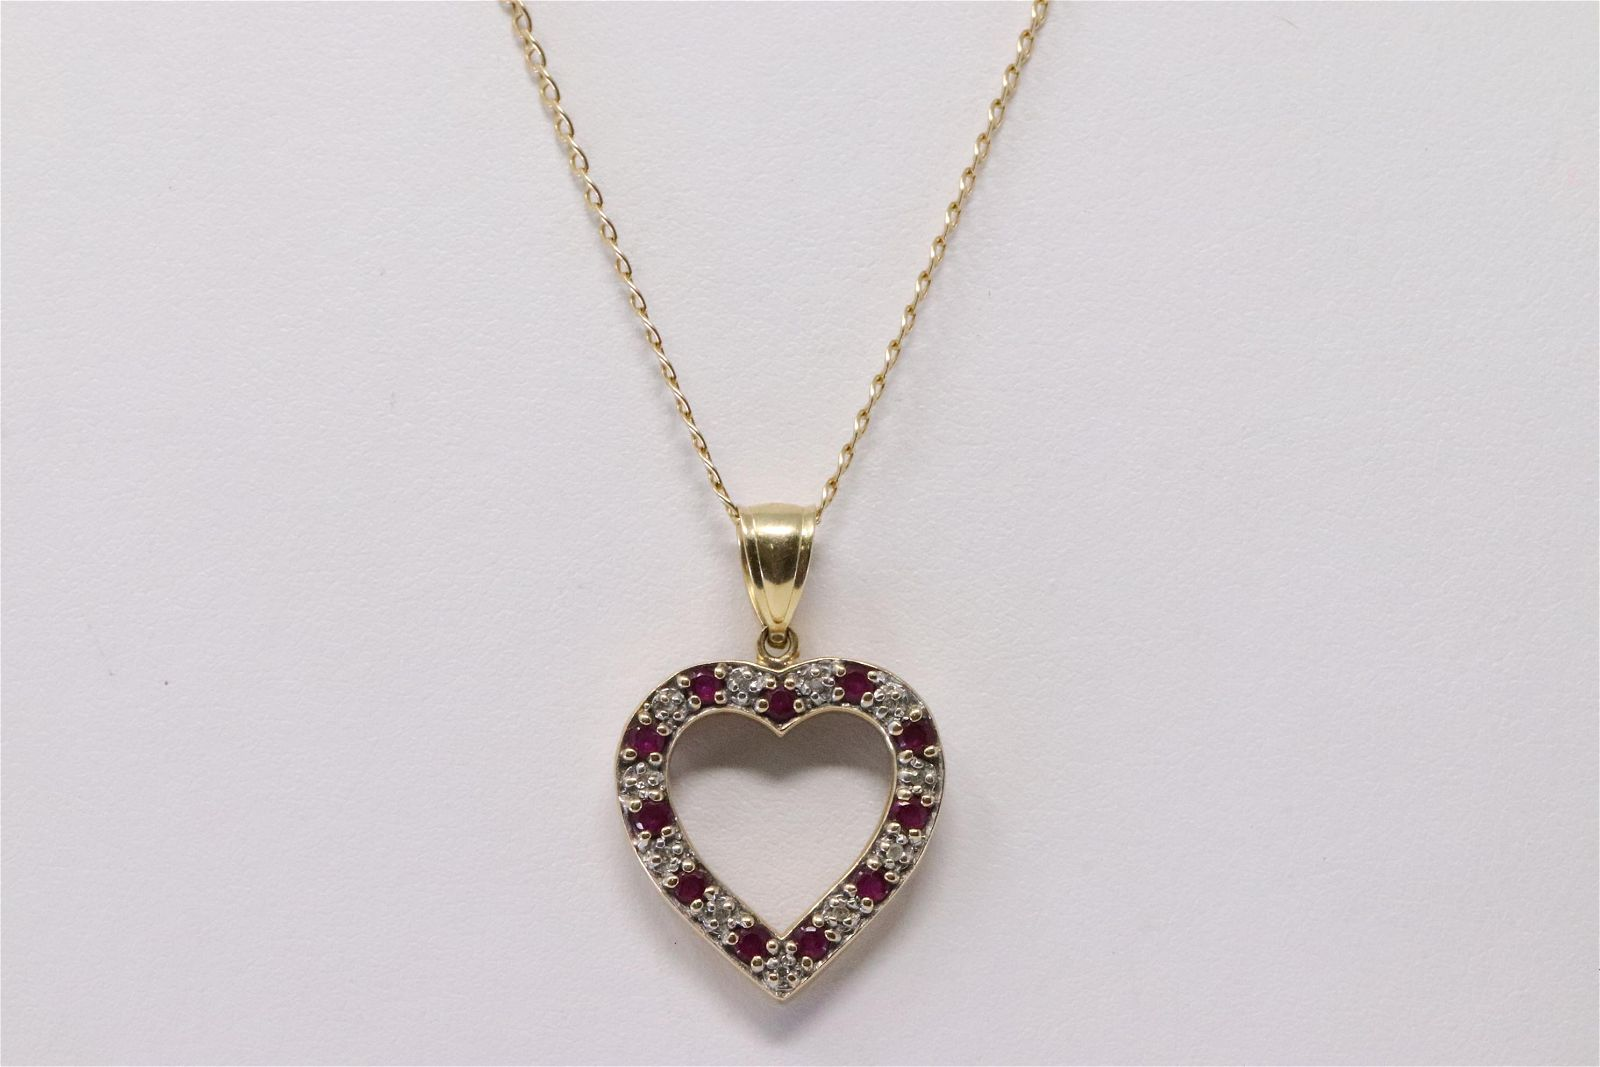 14Kt Yellow Gold Ruby Diamond Heart Pendant & Necklace.